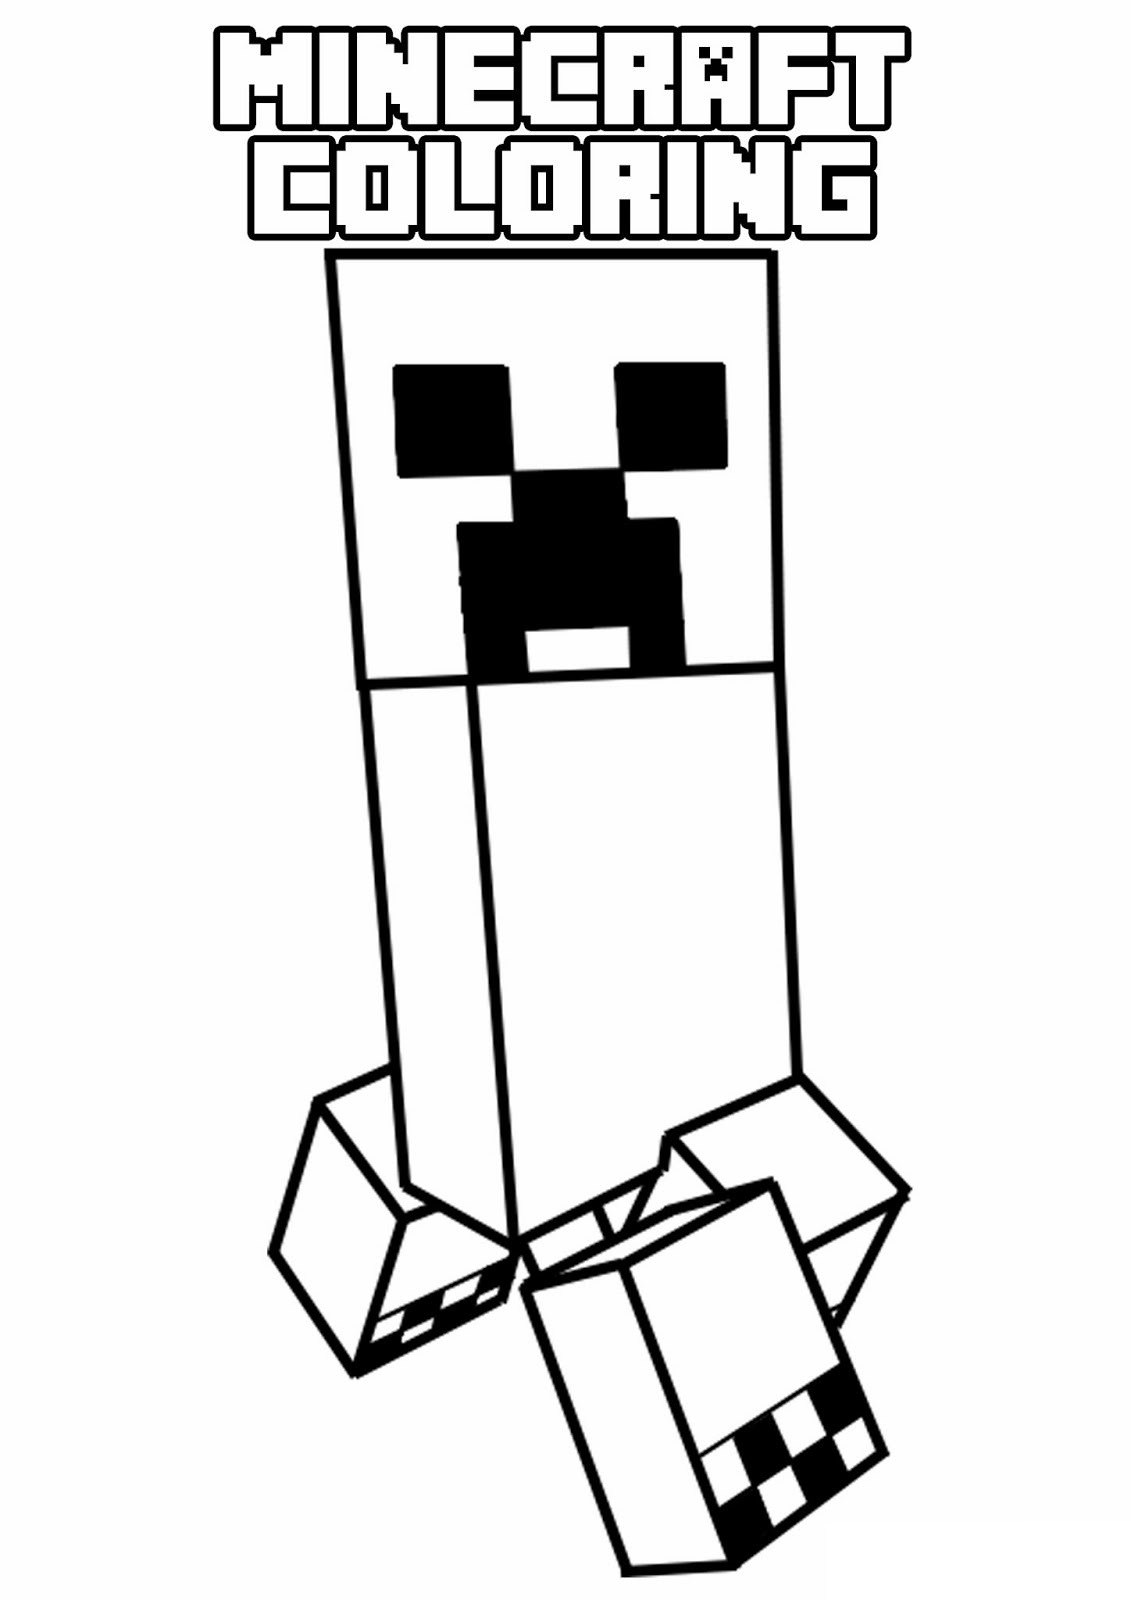 minecraft golden apple coloring pages 40 besten minecraft coloring pages bilder auf pinterest coloring golden minecraft apple pages